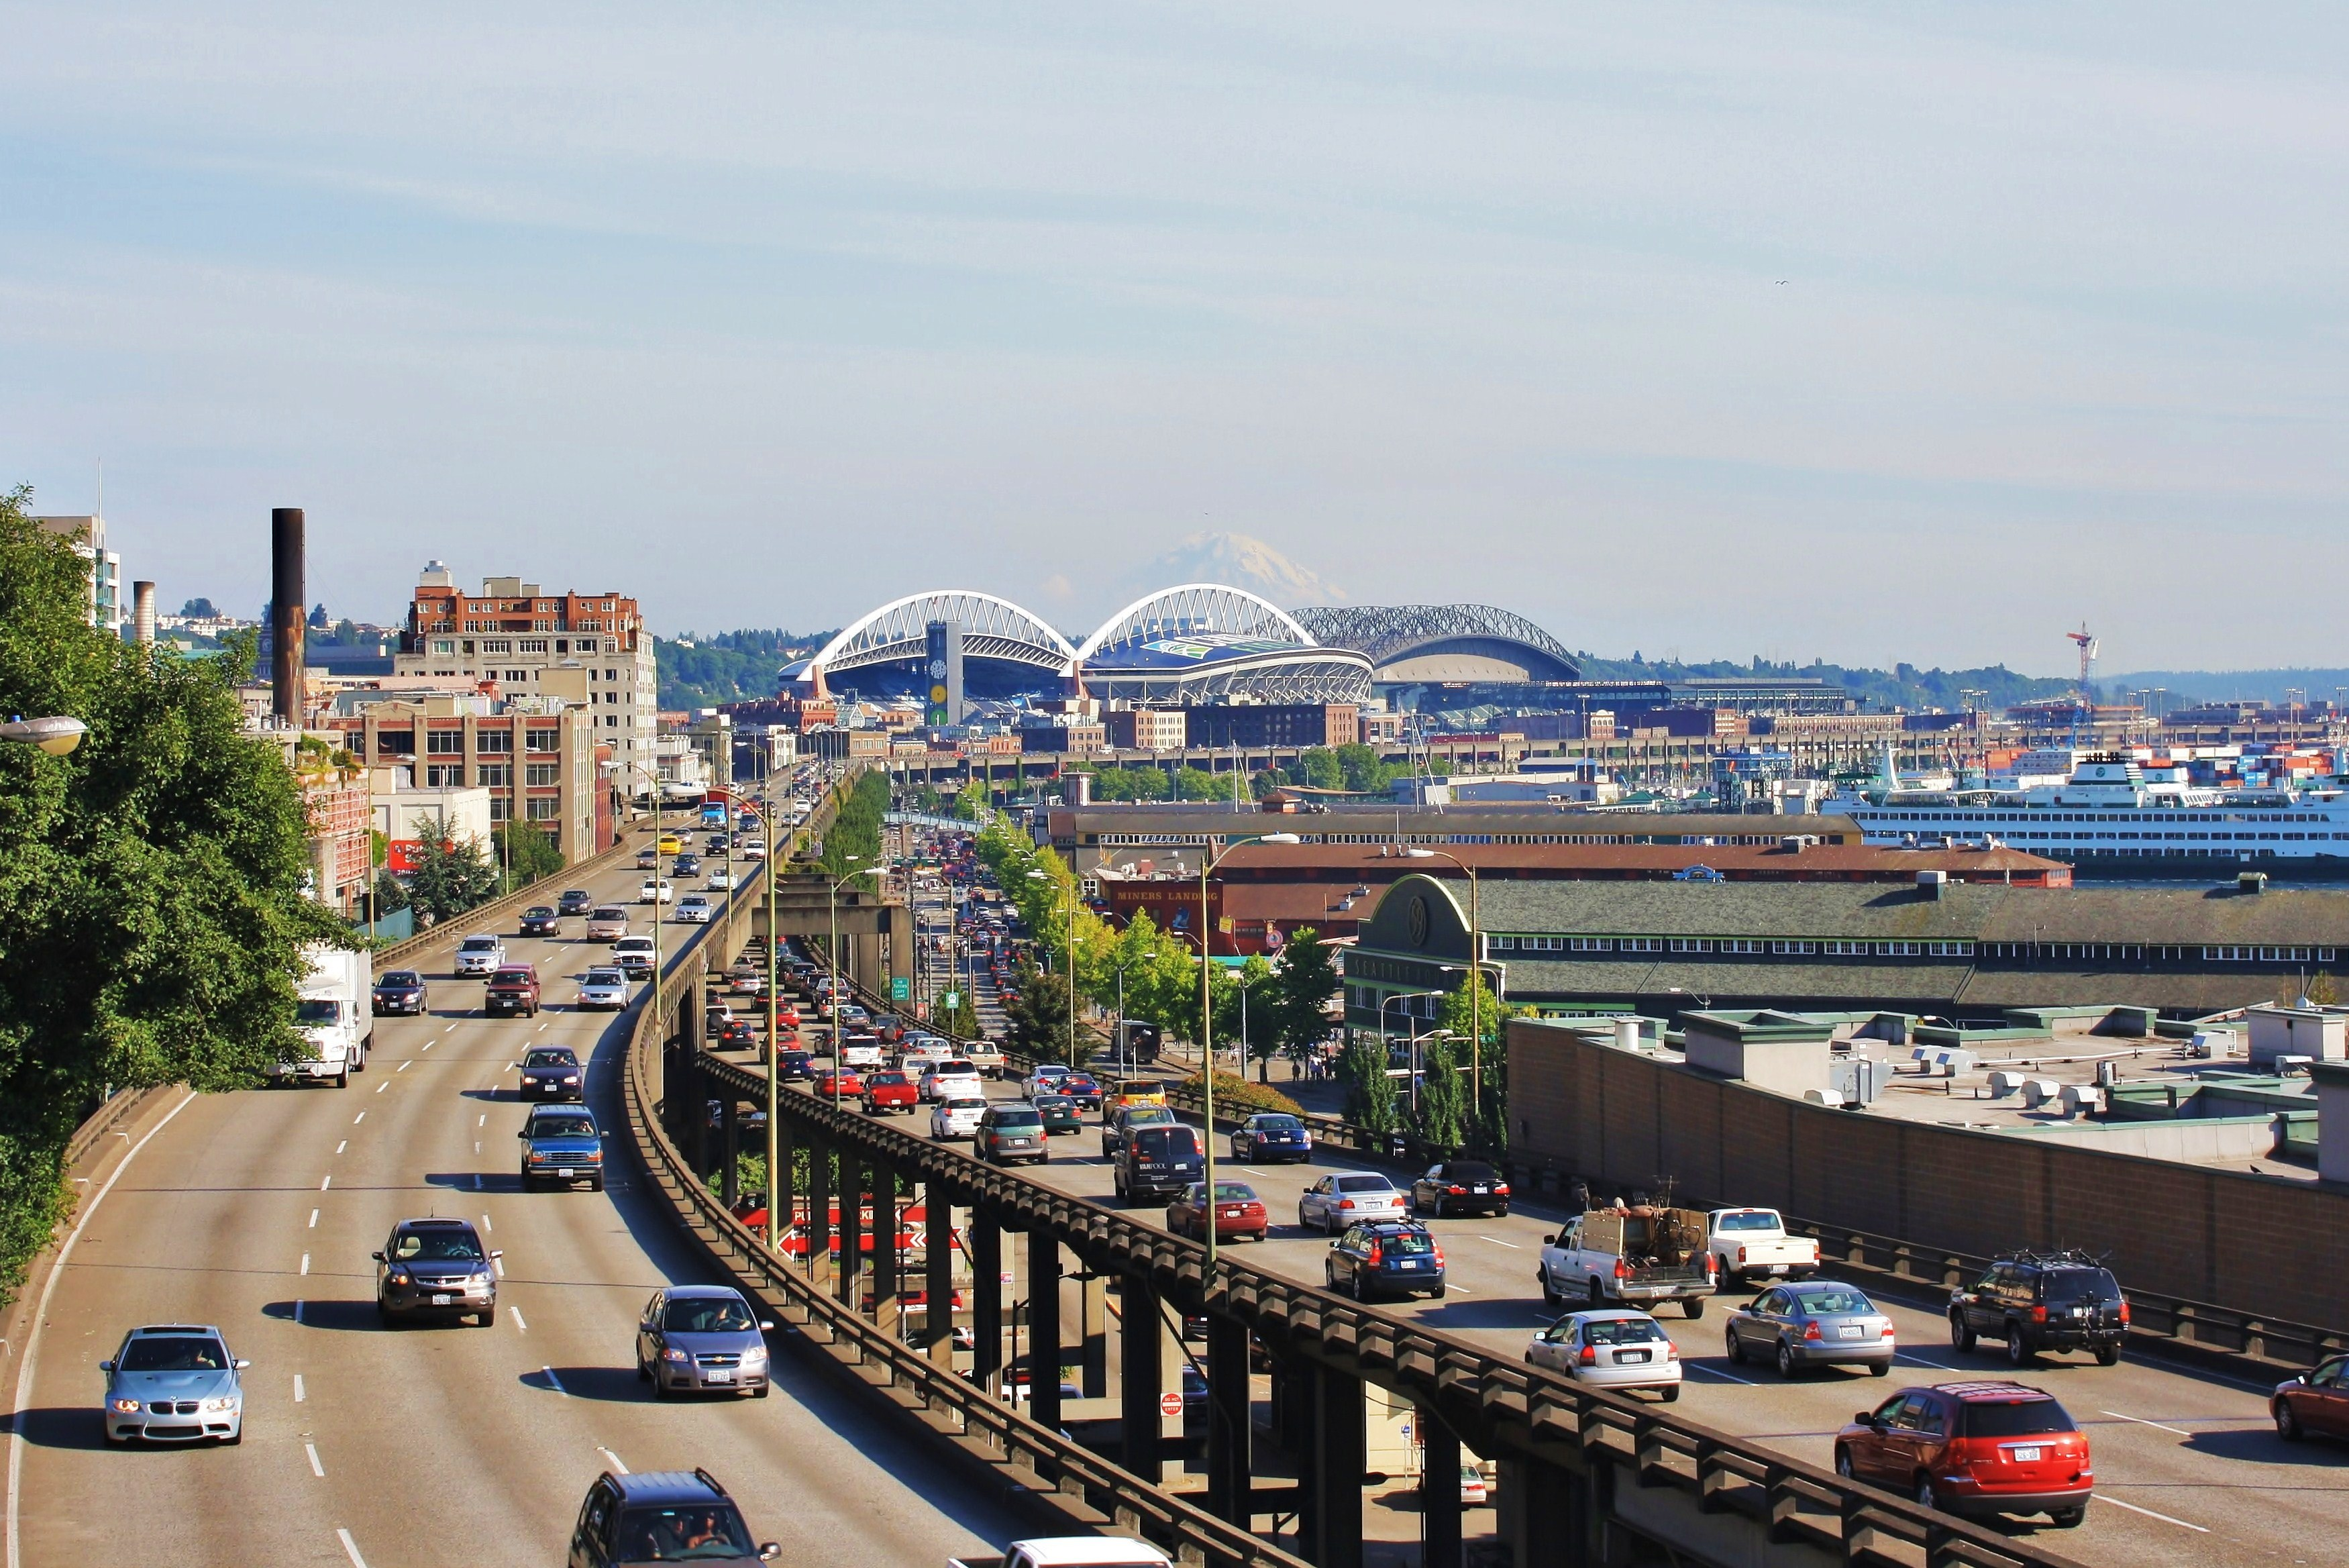 Cars travel in both directions on the Alaskan Way Viaduct in a photo taken from the north. Both CenturyLink and Safeco Fields are visible in the background.